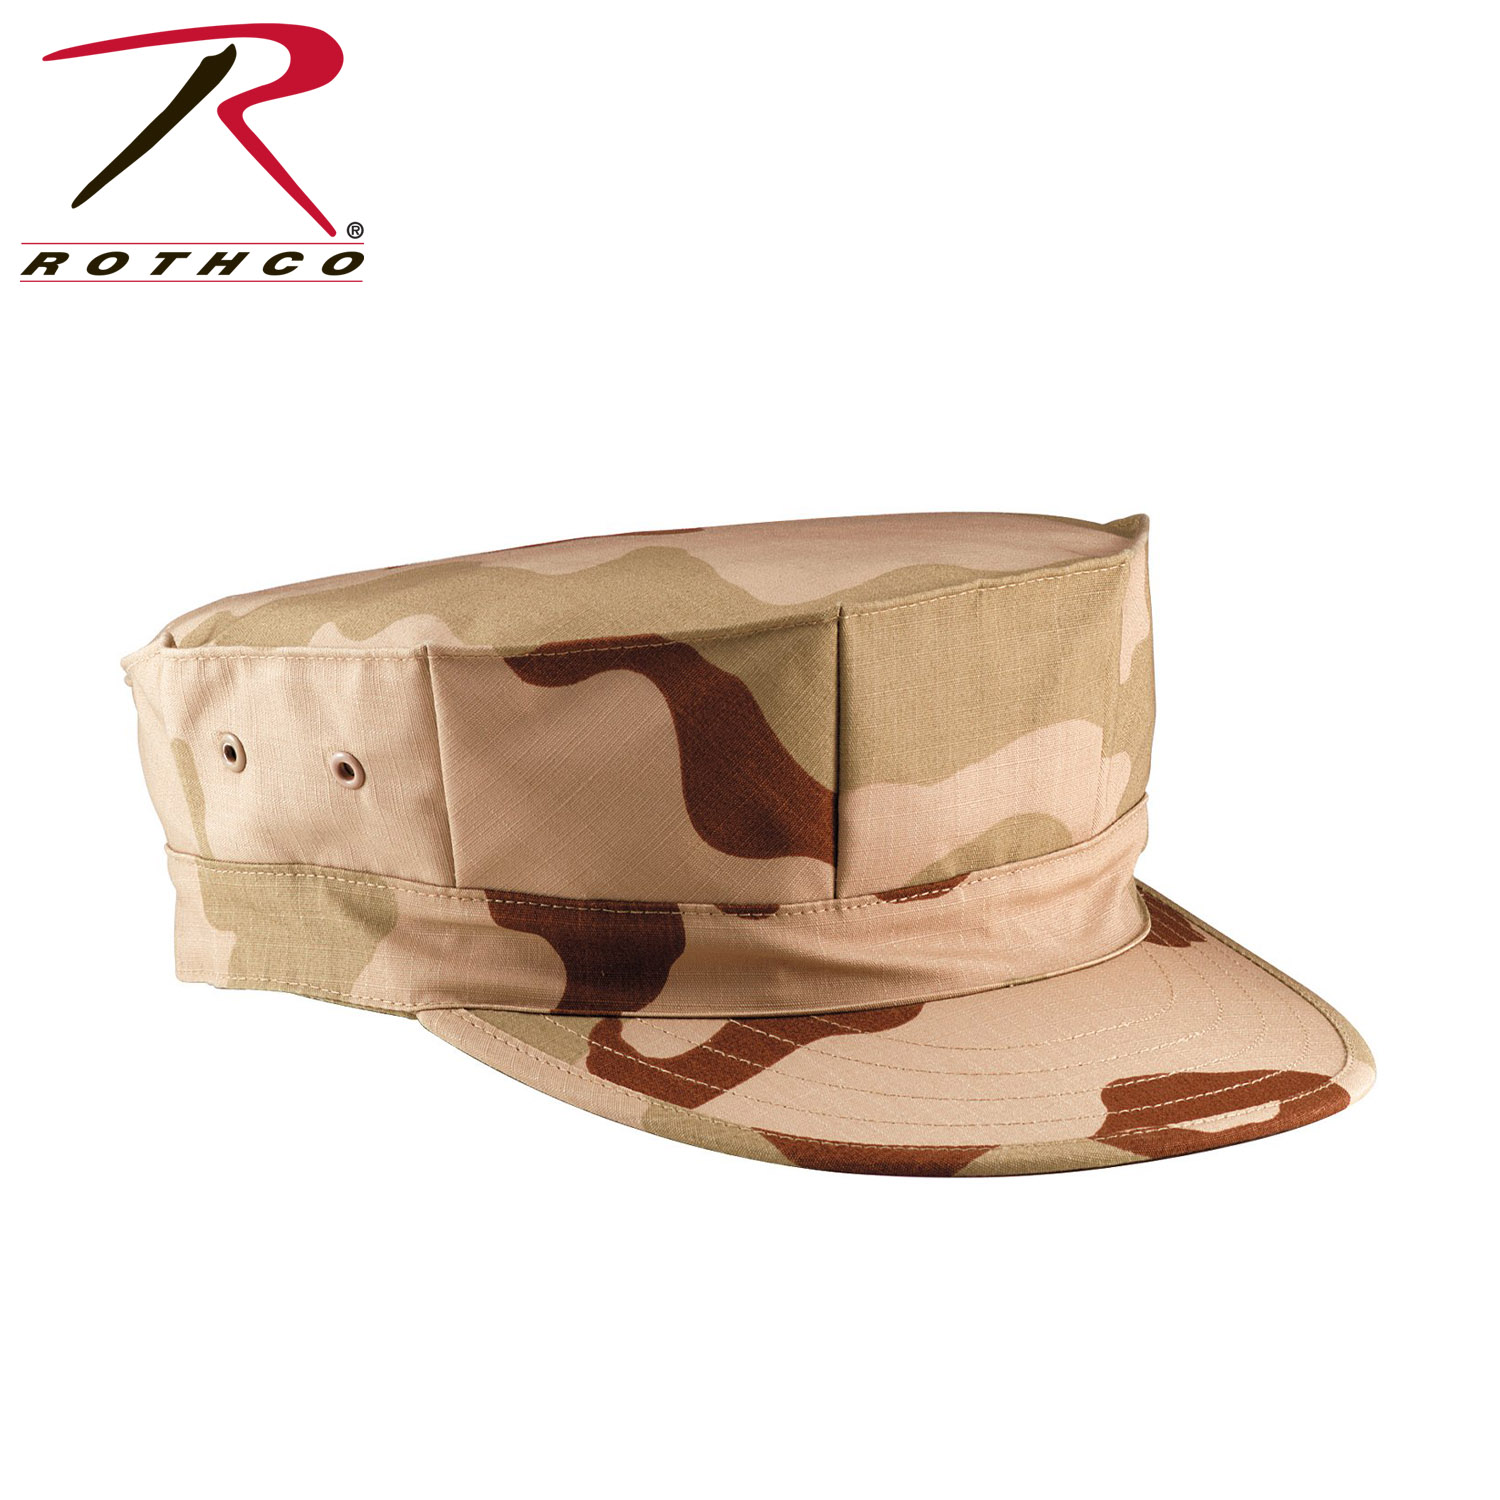 d6bfd1c78c5 5639 Rothco Tri-Color Desert Camouflage Marine Corps Fatigue Cap. Features.  55% cotton   45% polyester ...